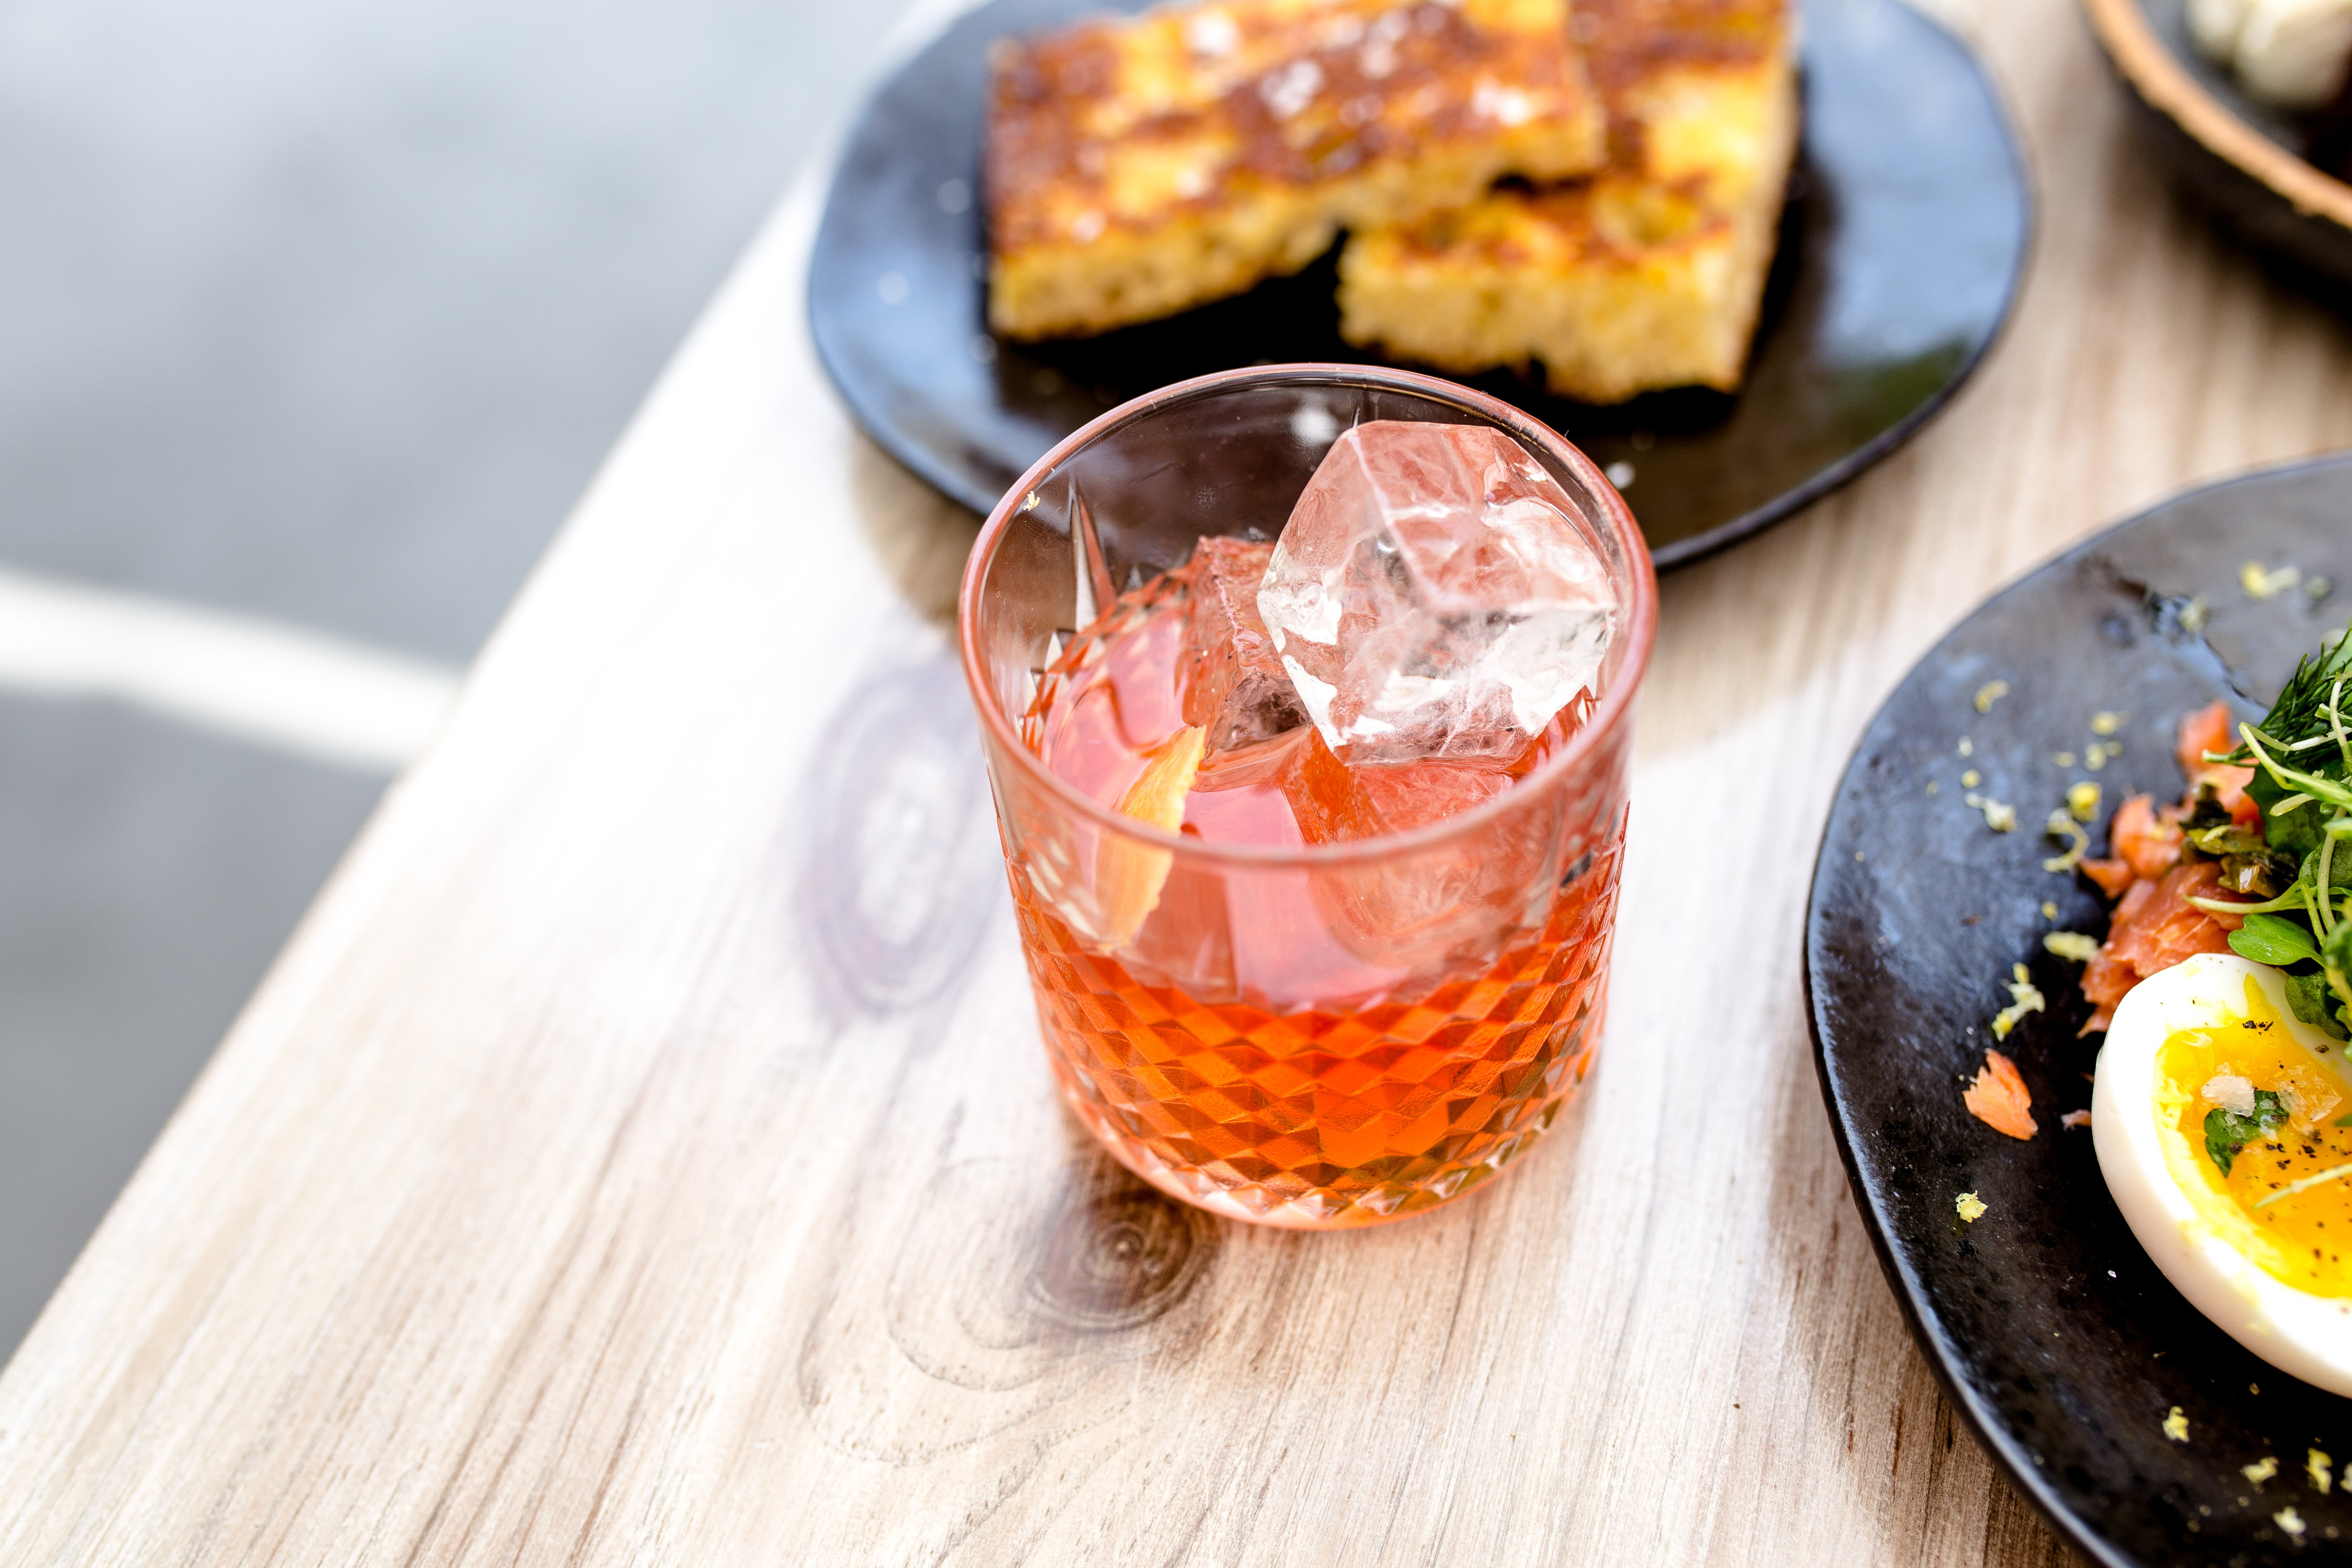 clear rocks glass with liquor and ice cubes beside black plate with breads on brown wooden table